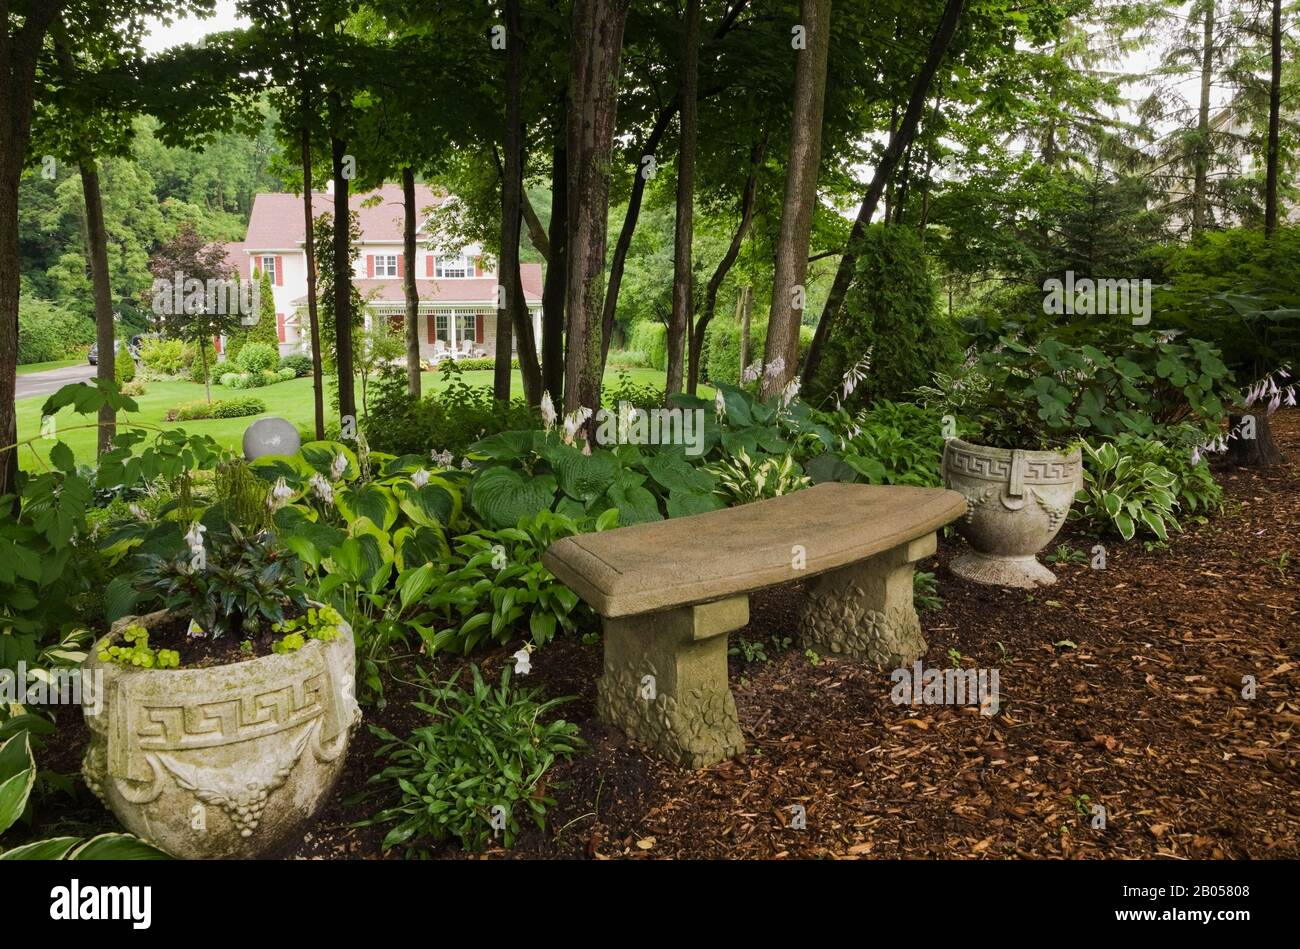 Concrete Sitting Bench And Planters On Cedar Mulch Path Bordered